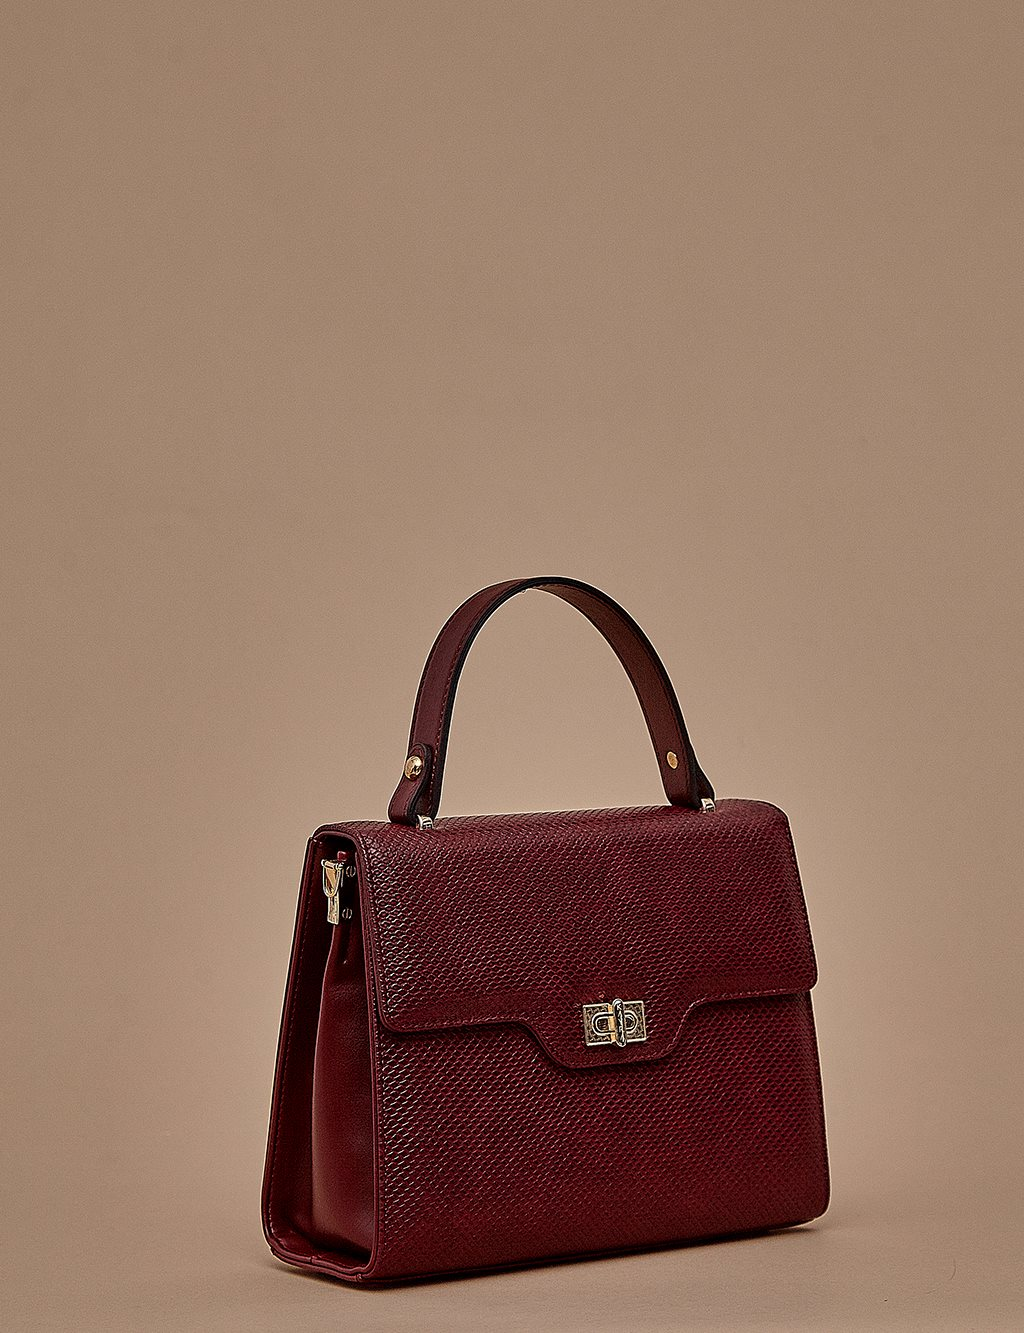 Metallic Handbag A9 CNT15 Burgundy